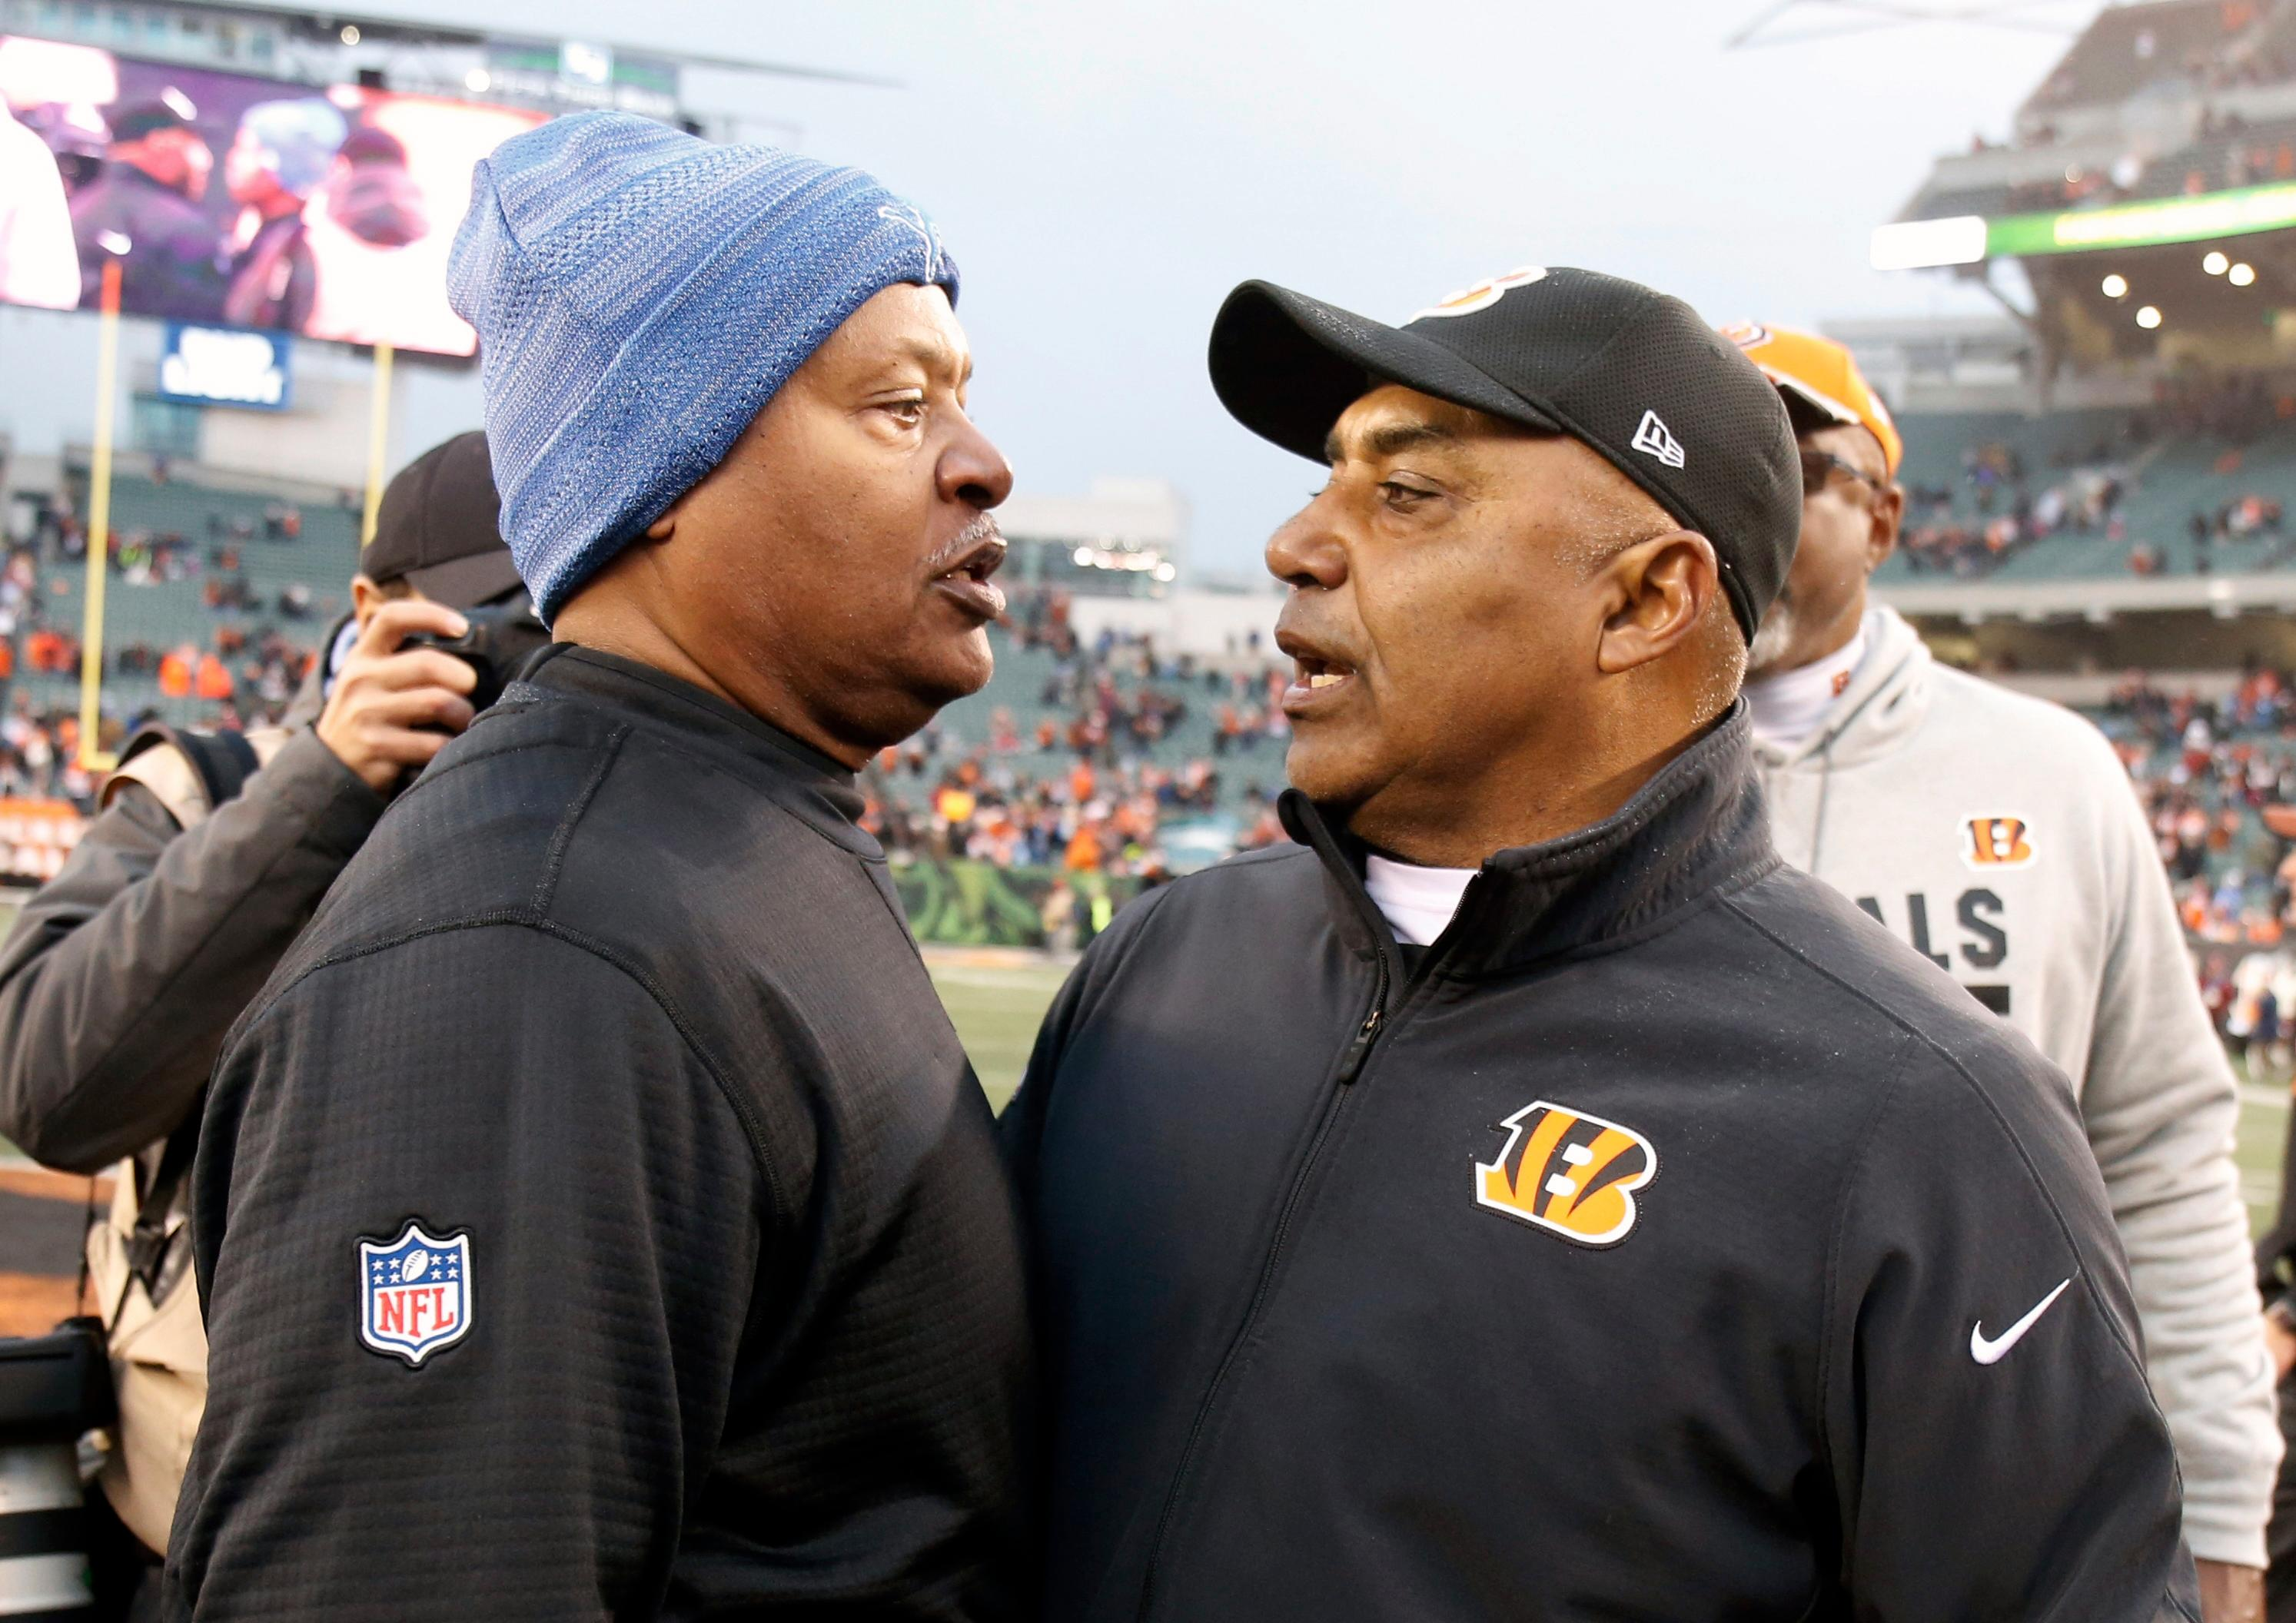 Detroit Lions head coach Jim Caldwell, left, meets with Cincinnati Bengals head coach Marvin Lewis after their NFL football game, Sunday, Dec. 24, 2017, in Cincinnati. (AP Photo/Gary Landers)